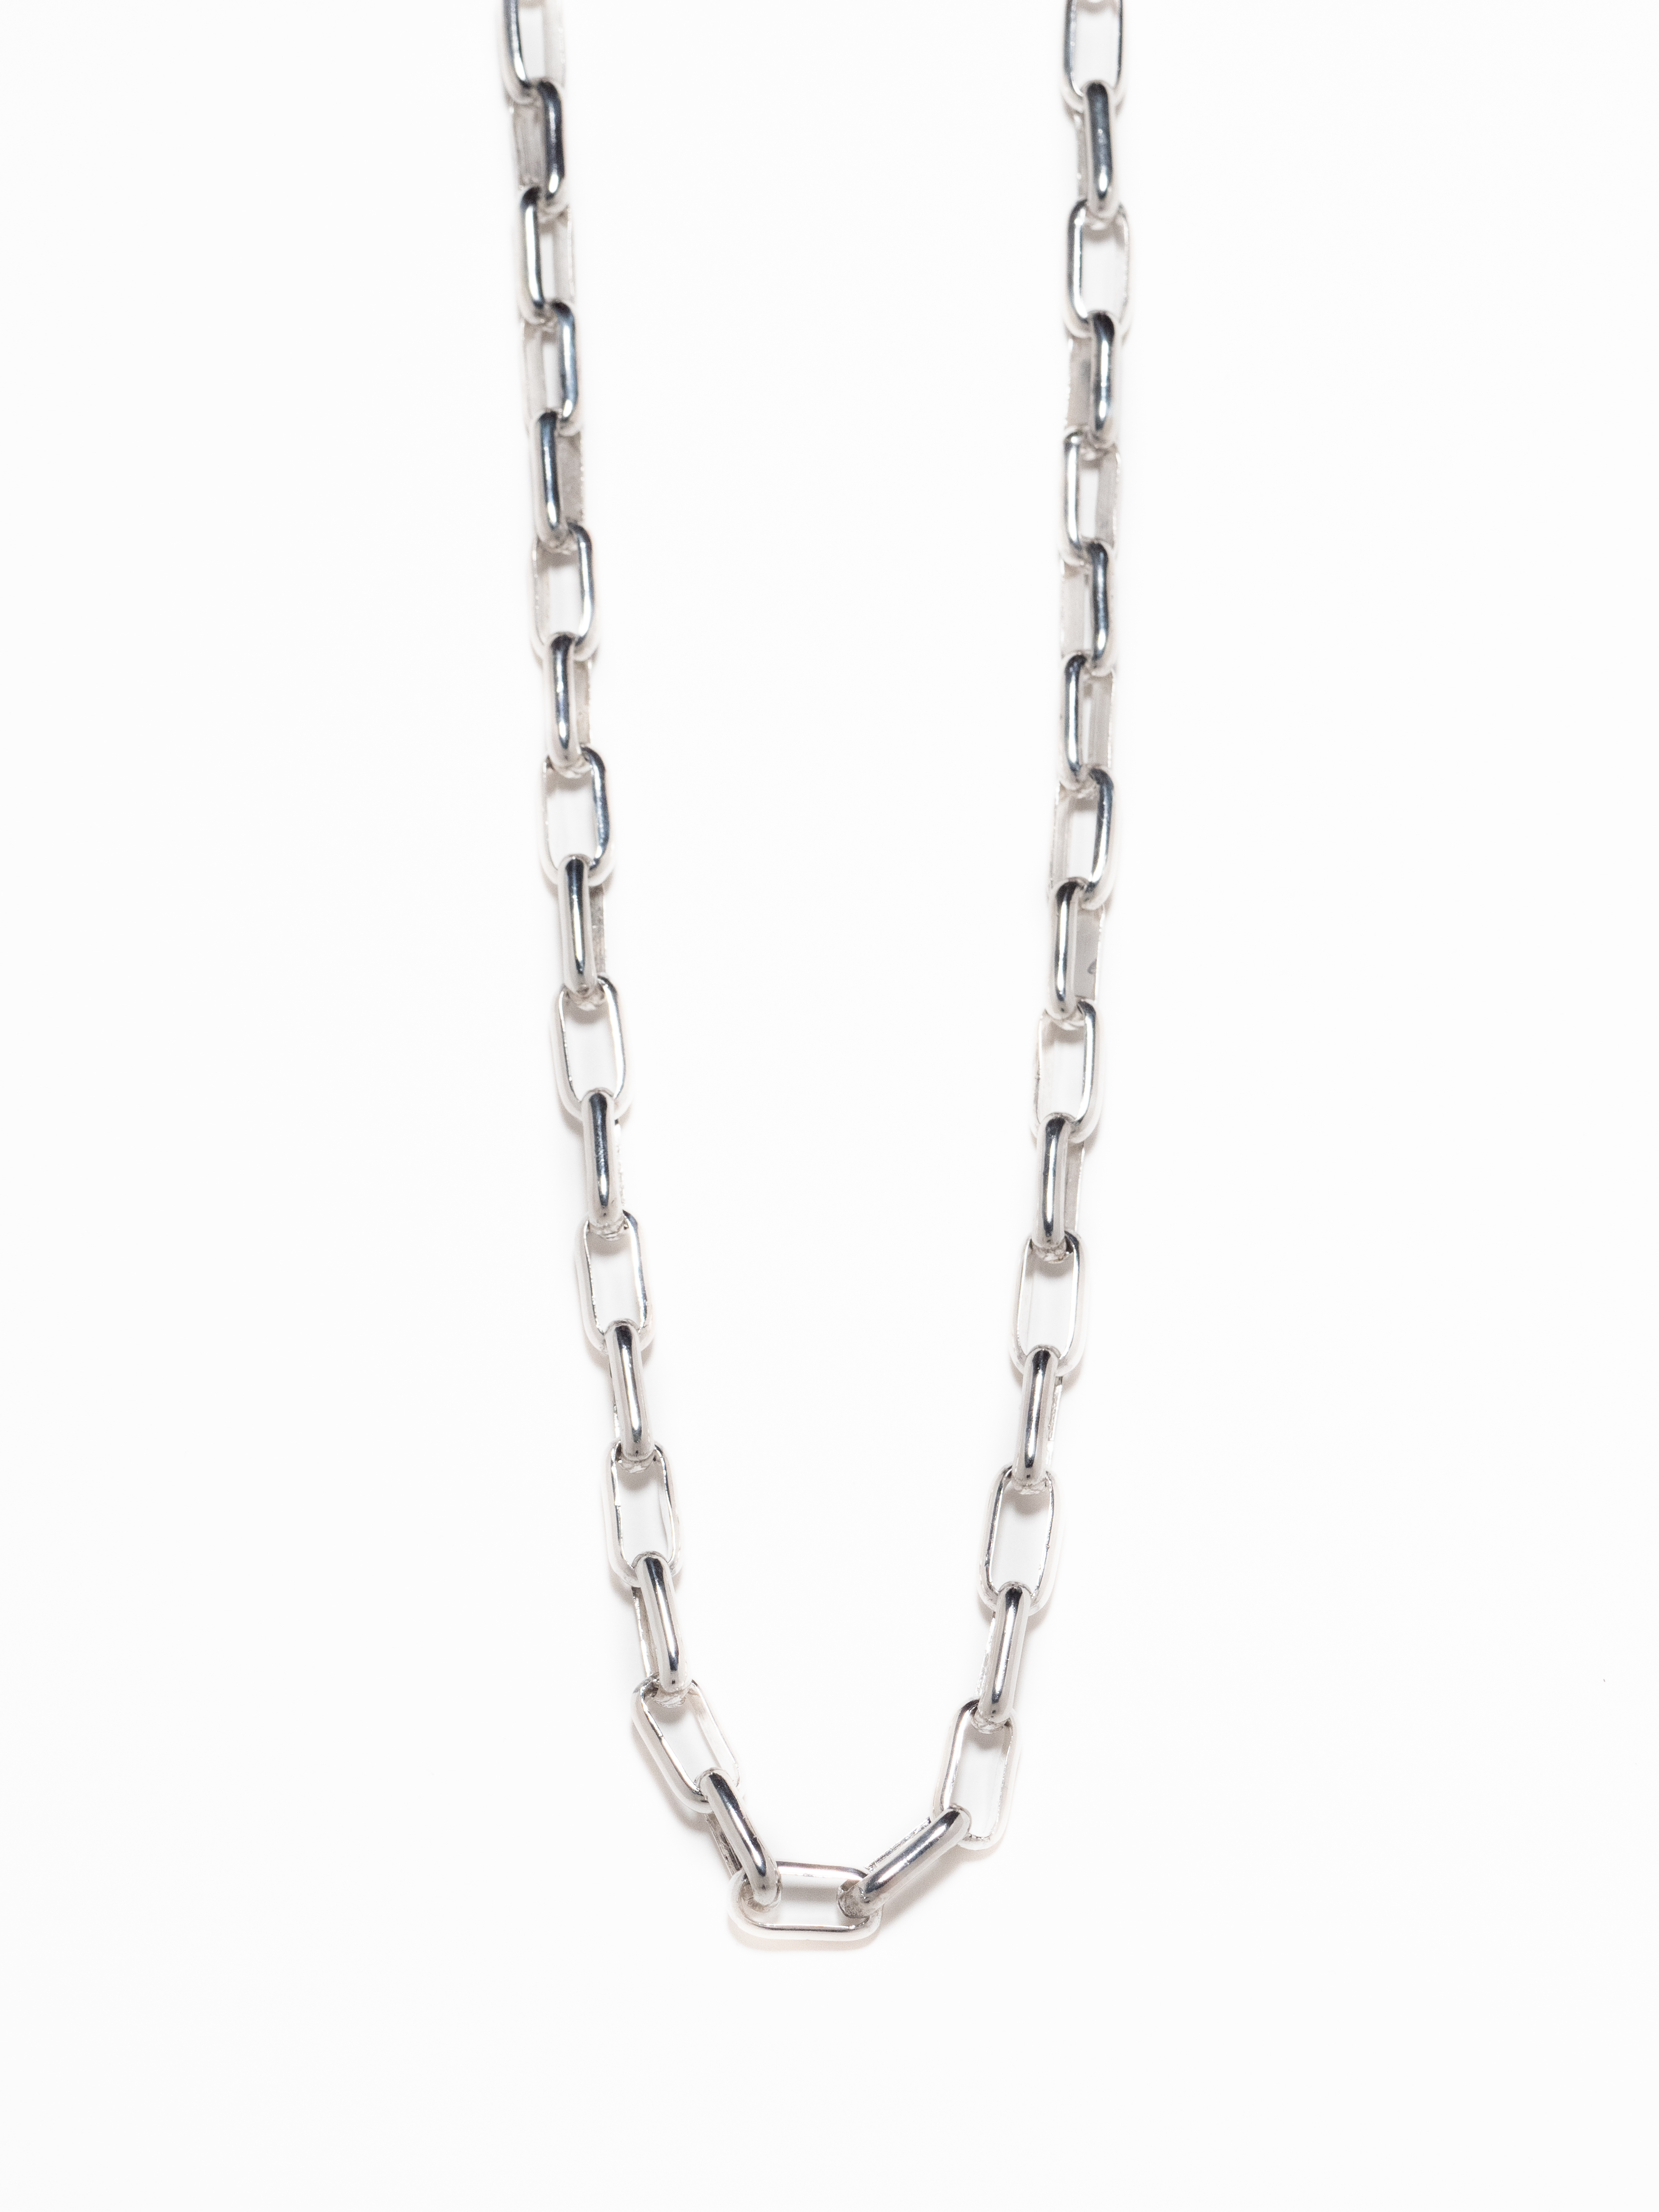 Long Navajo Chain Necklace / Larry Yazzie